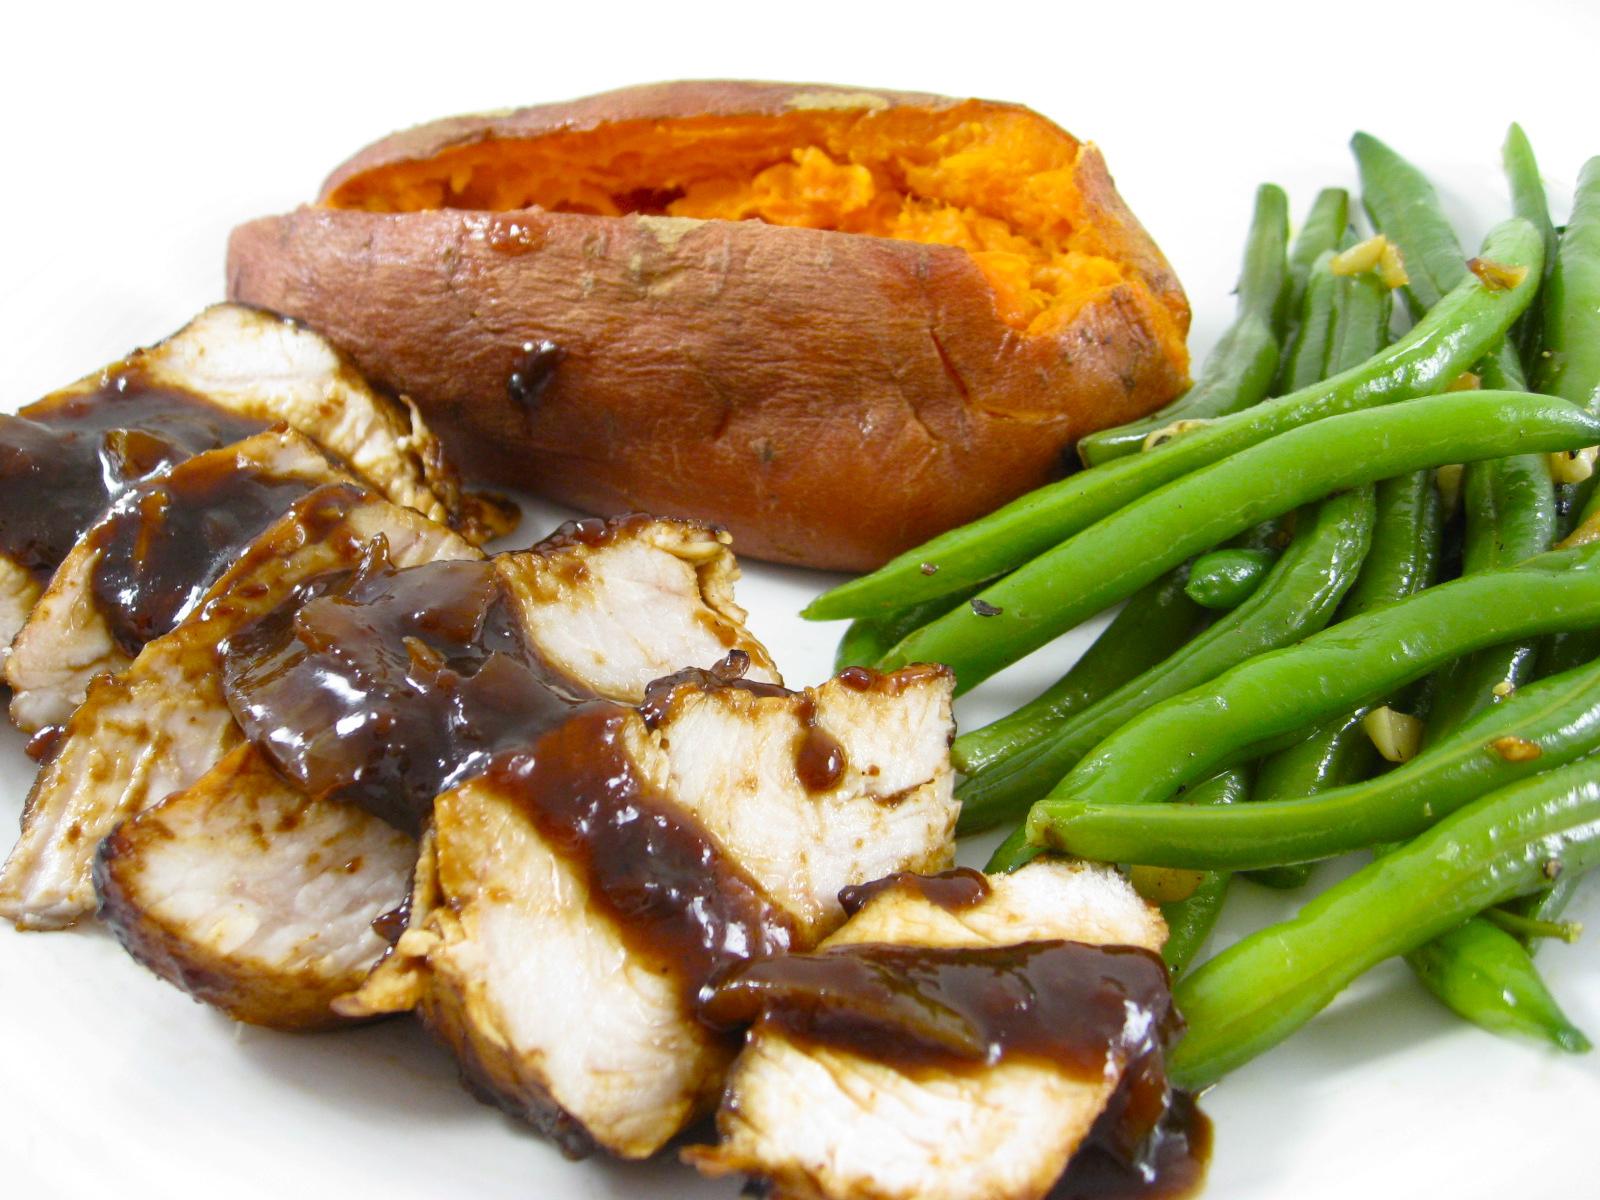 Http Www Skinnykitchen Com Recipes Hearty And Healthy Autumn Turkey Dinner